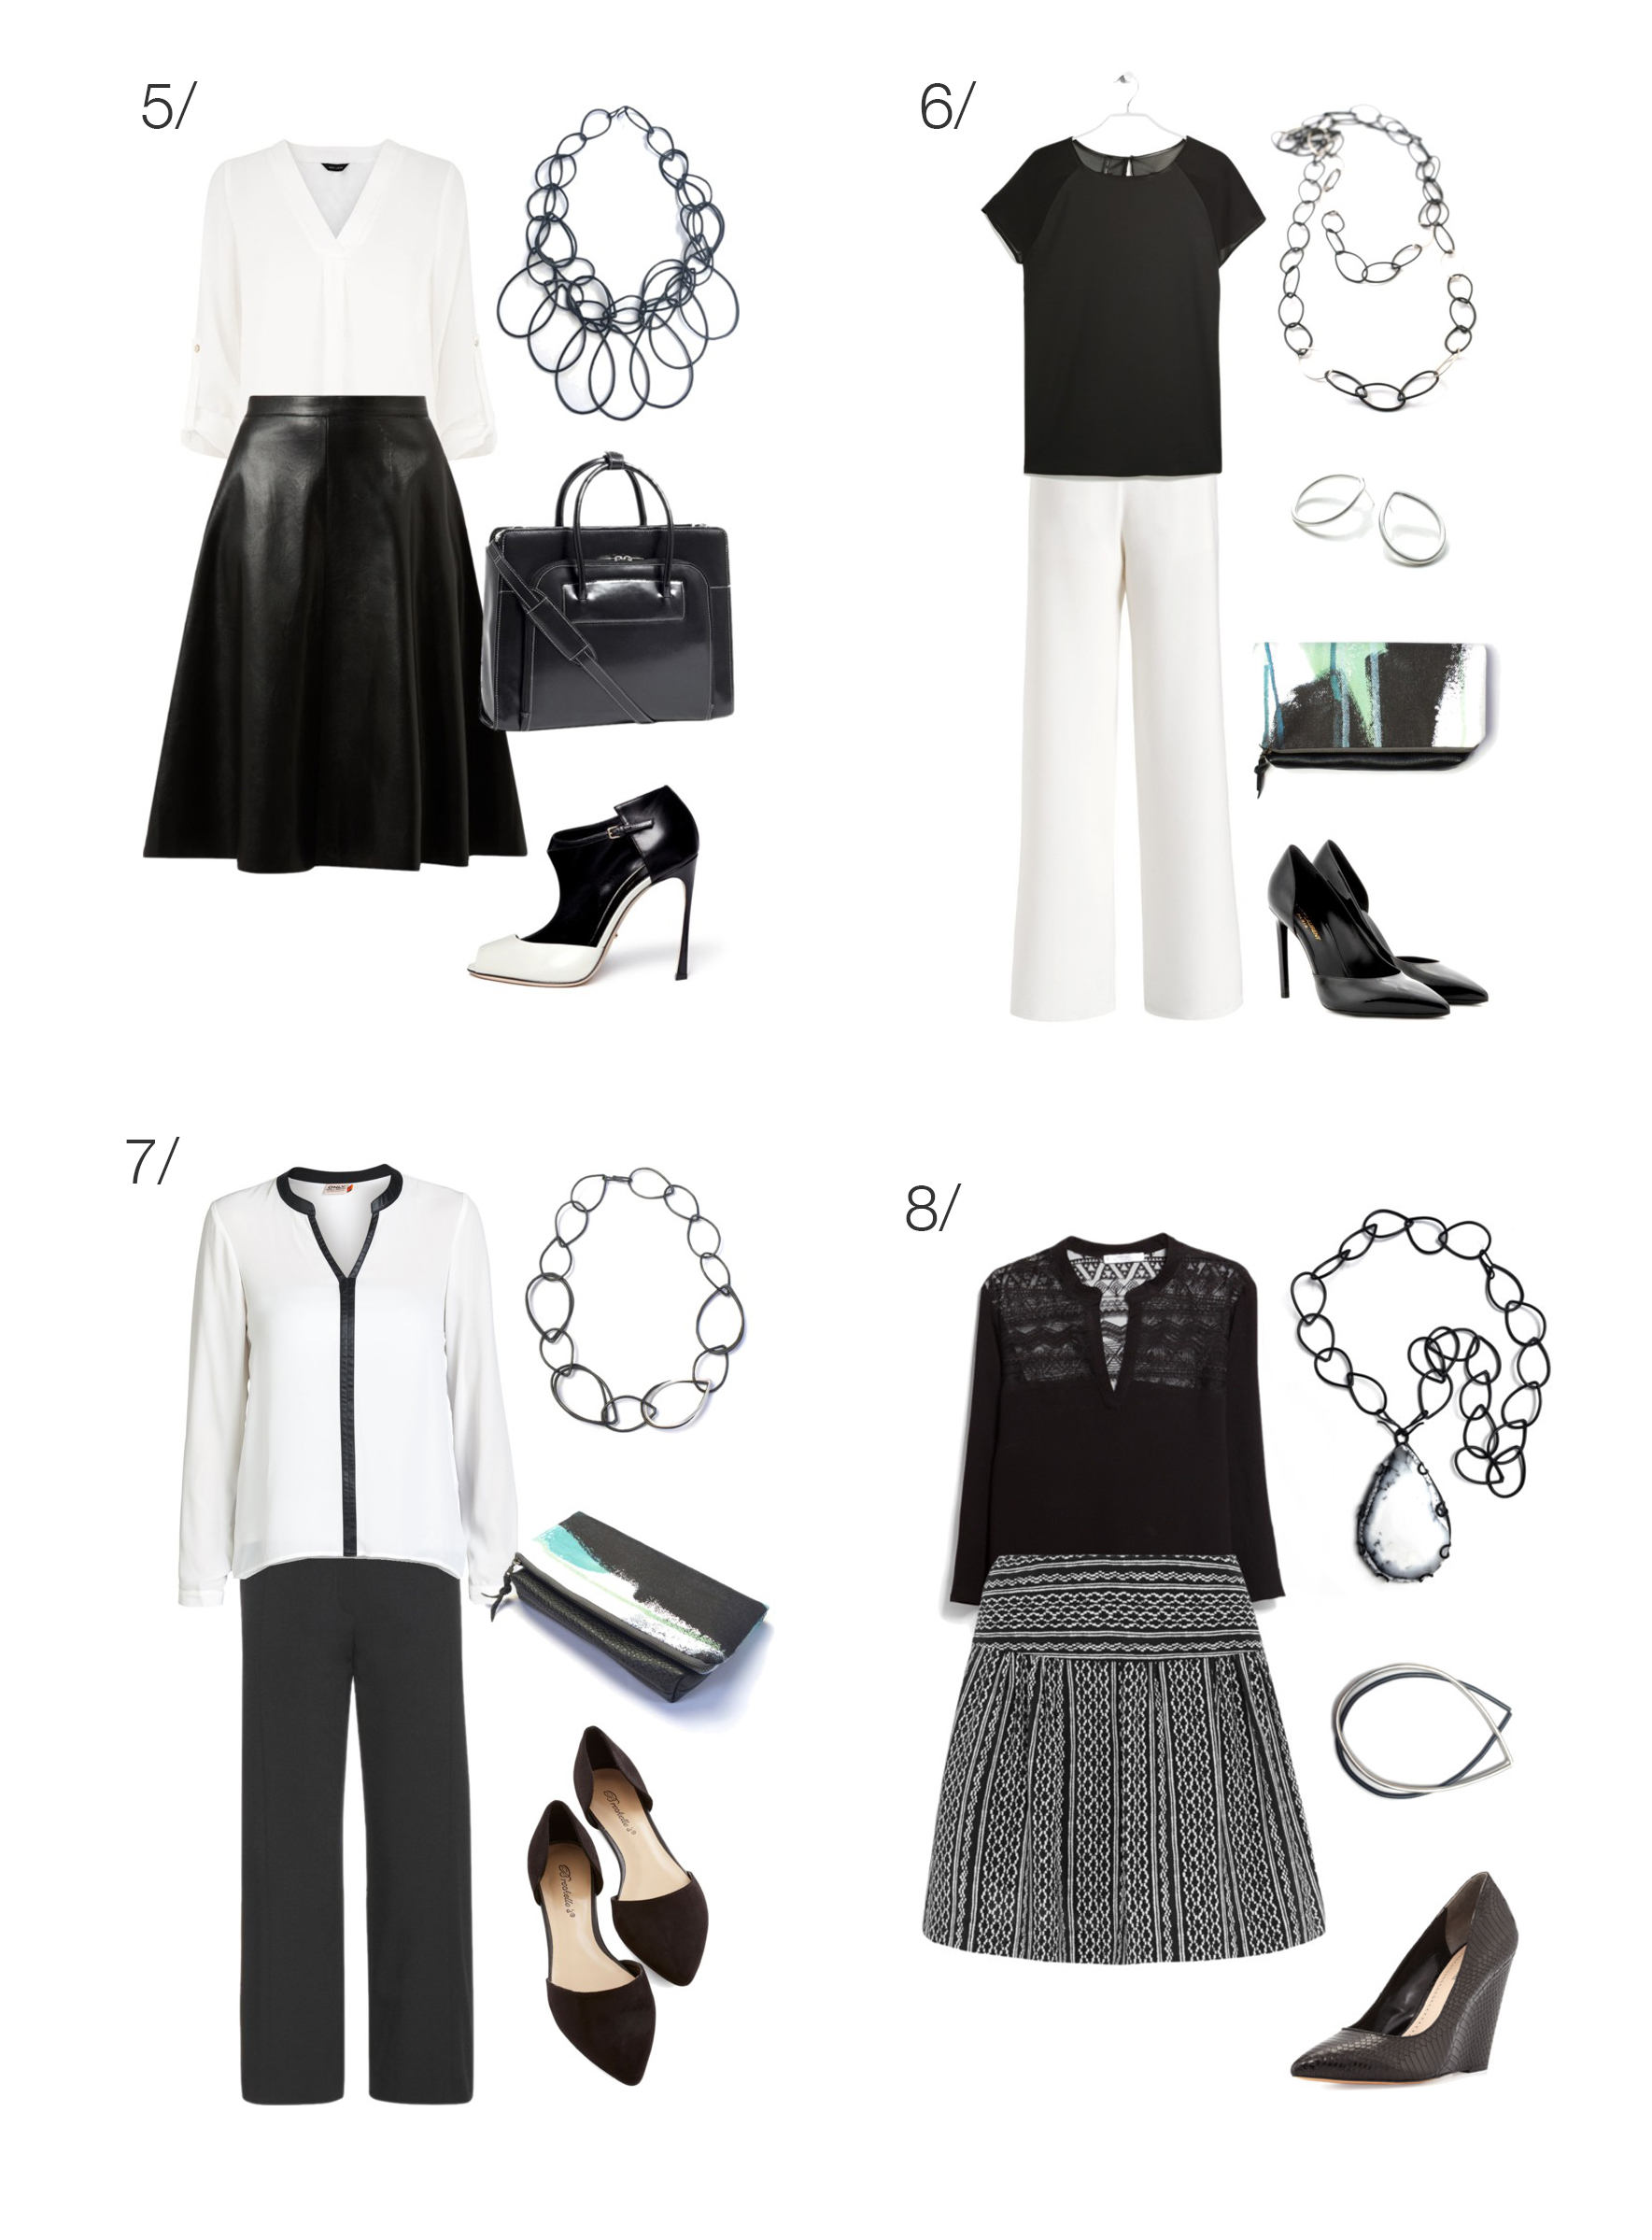 half off factory outlet official photos 8 chic and stylish ways to wear black and white to work - MEGAN AUMAN